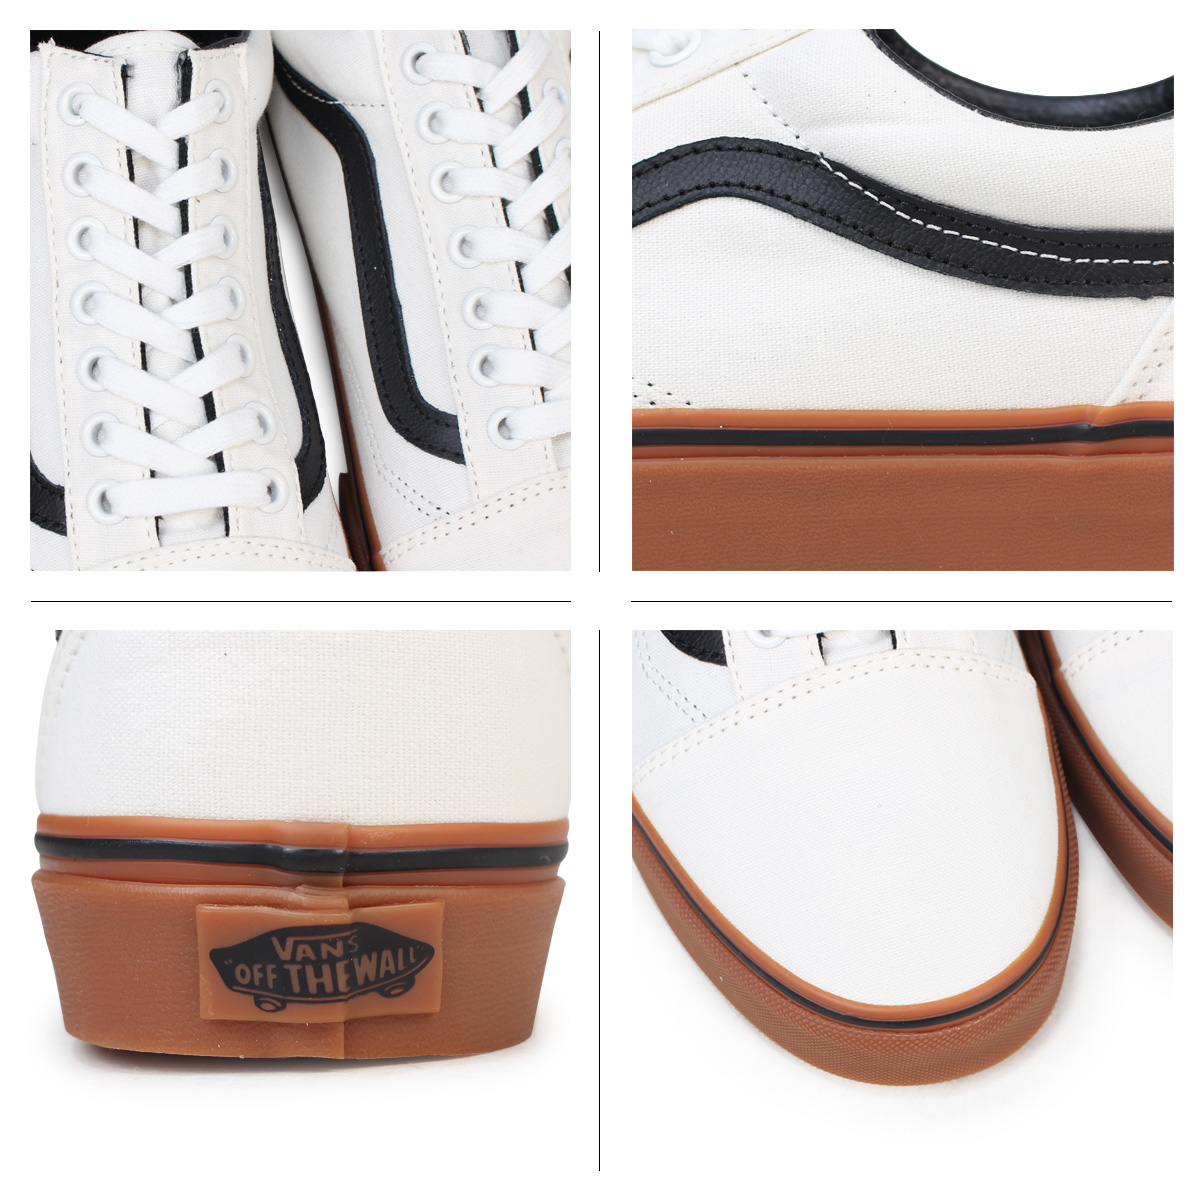 986cff3f9fb988 VANS old school sneakers men gum sole vans station wagons OLD SKOOL GUM  VN0A38G1MW1 men shoes white  the 5 16 additional arrival